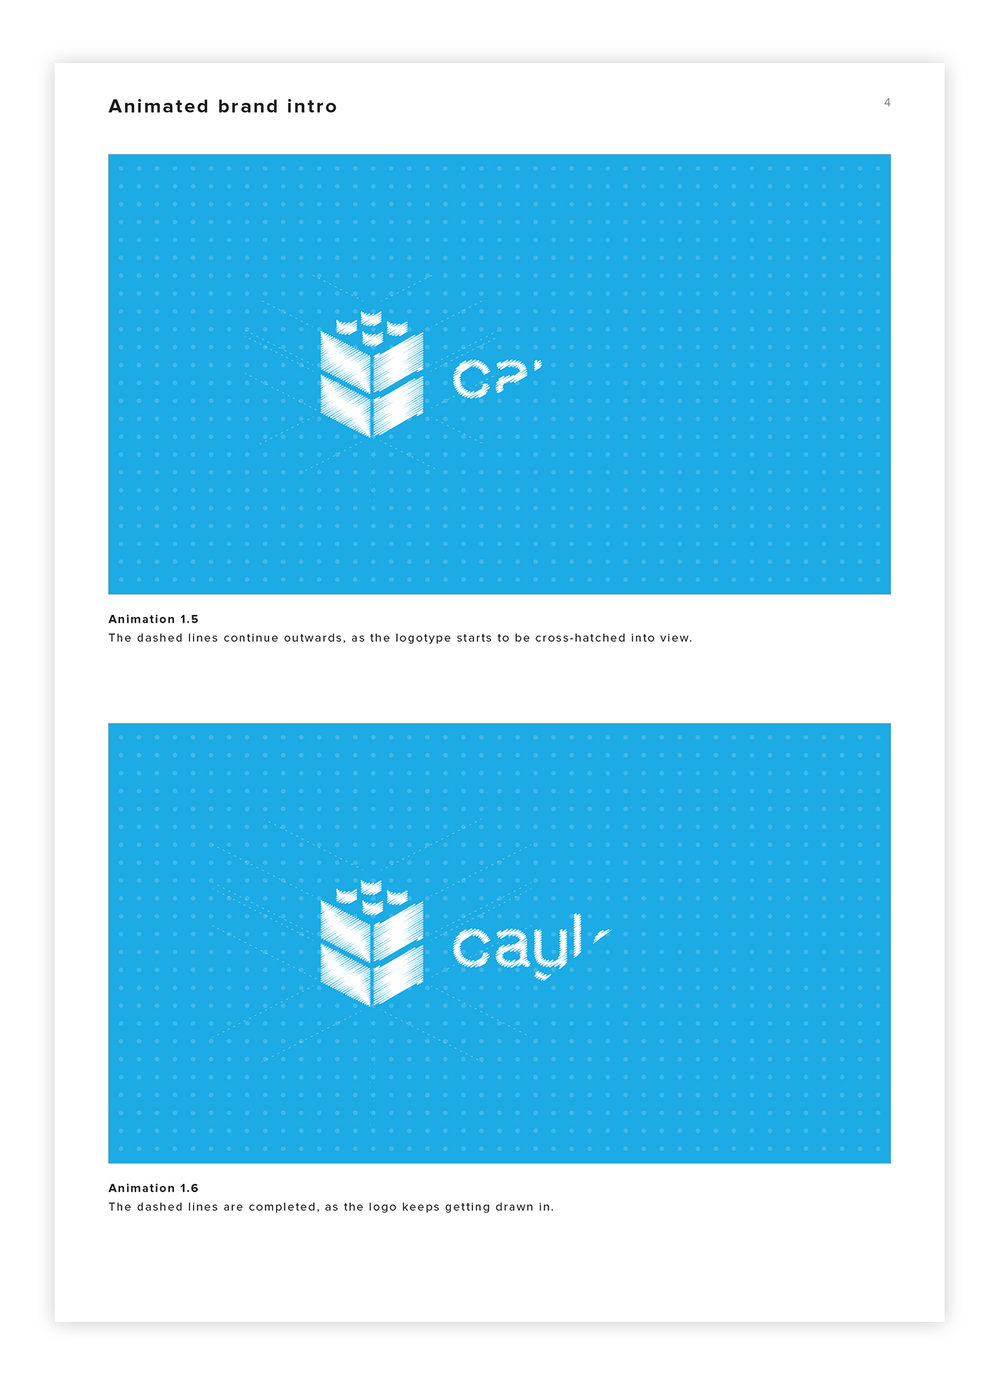 Caylent_Animated_Brand_Intro_Presentation.3.jpg